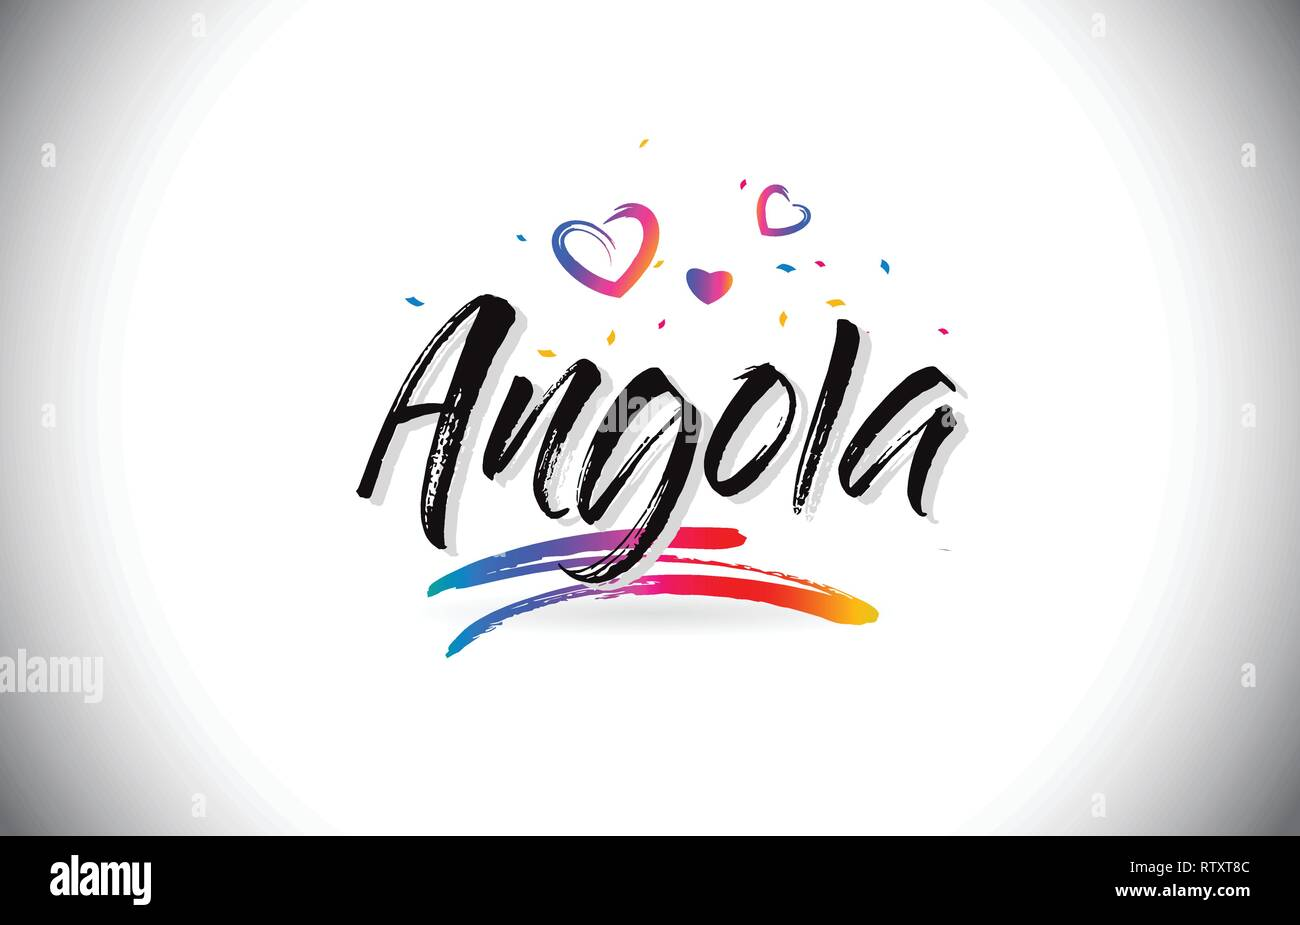 Angola Welcome To Word Text with Love Hearts and Creative Handwritten Font Design Vector Illustration. - Stock Vector